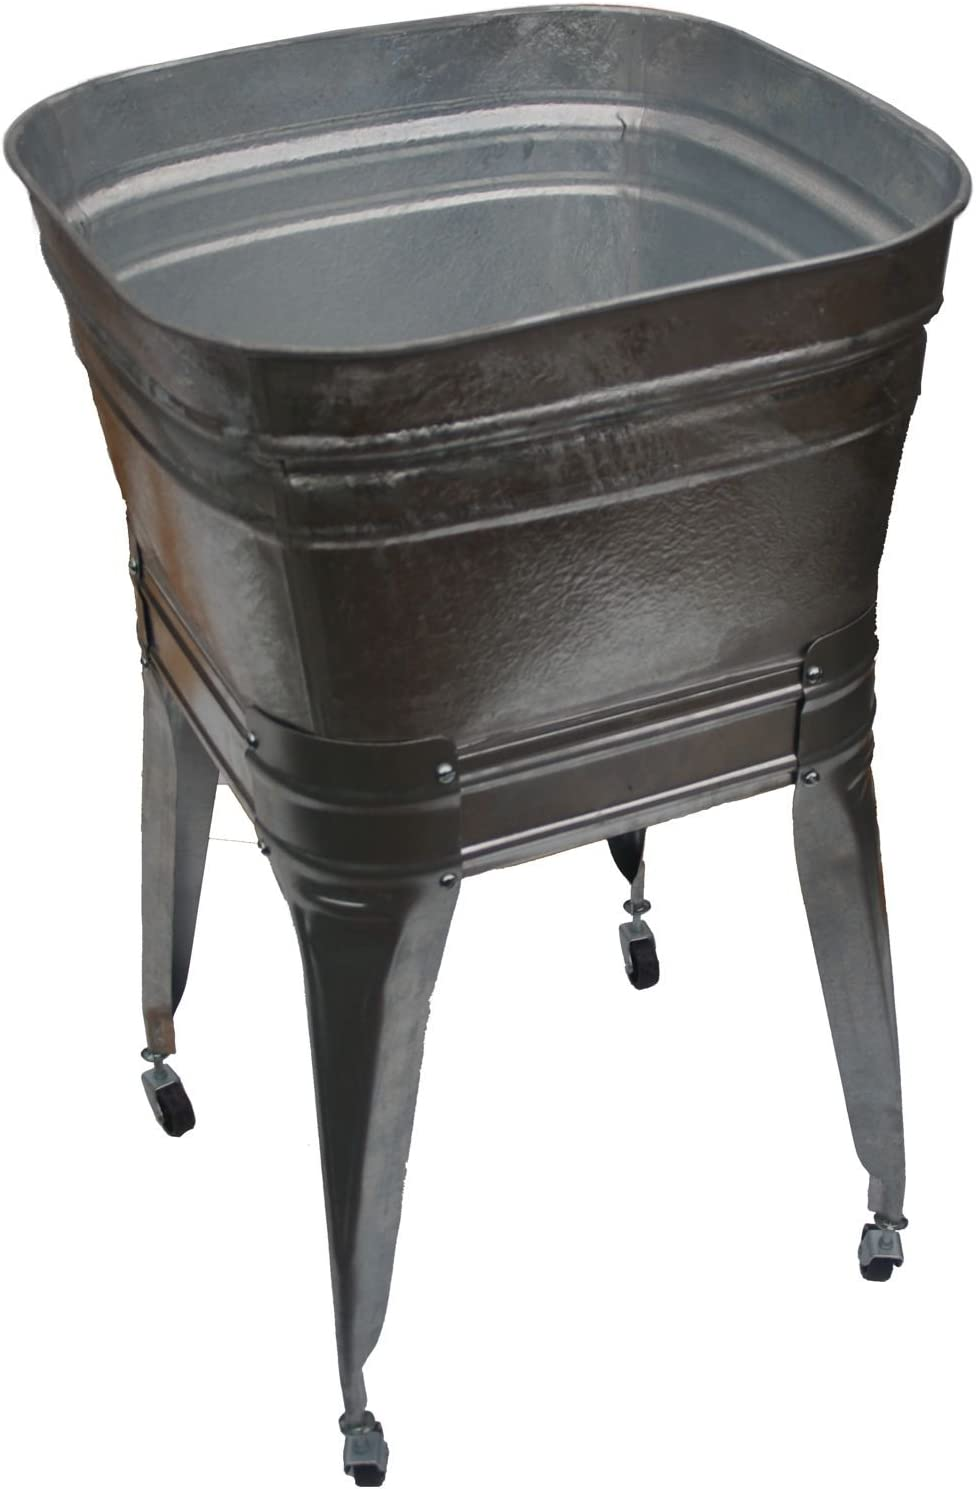 Square Wash Tub with stand and drain